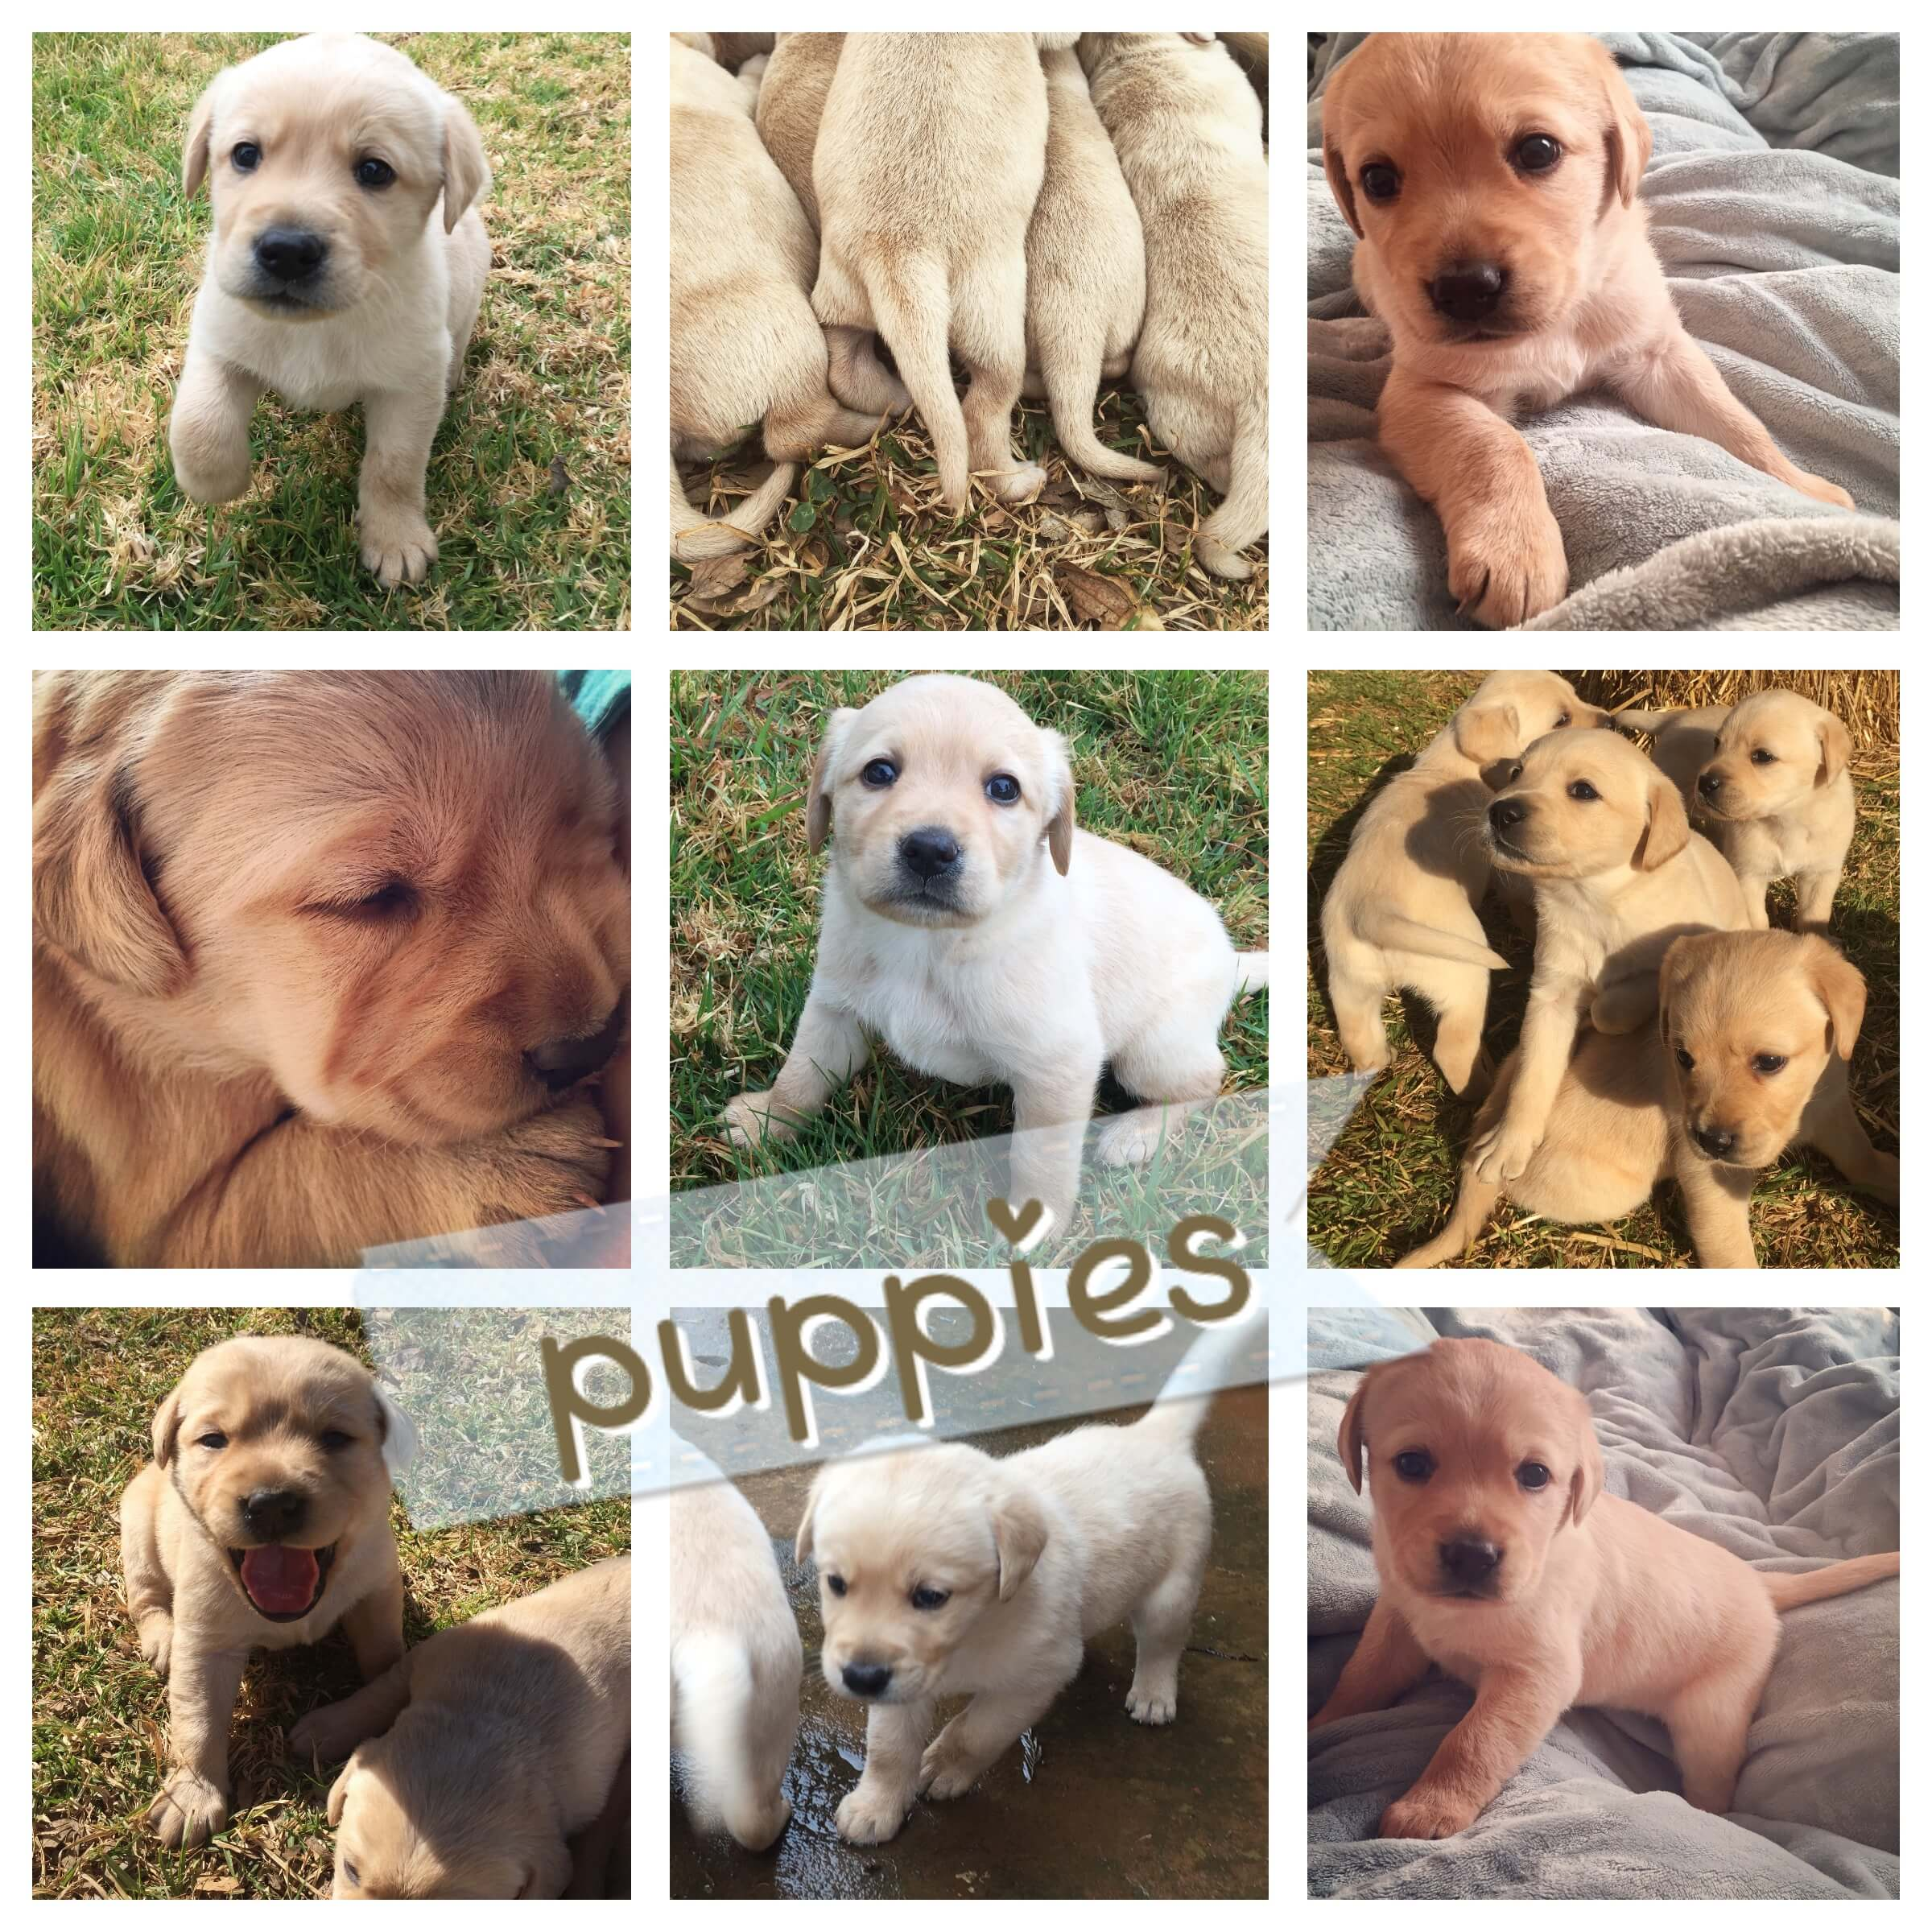 Labrador Puppies for Sale in Other by Nadine Abrahamse